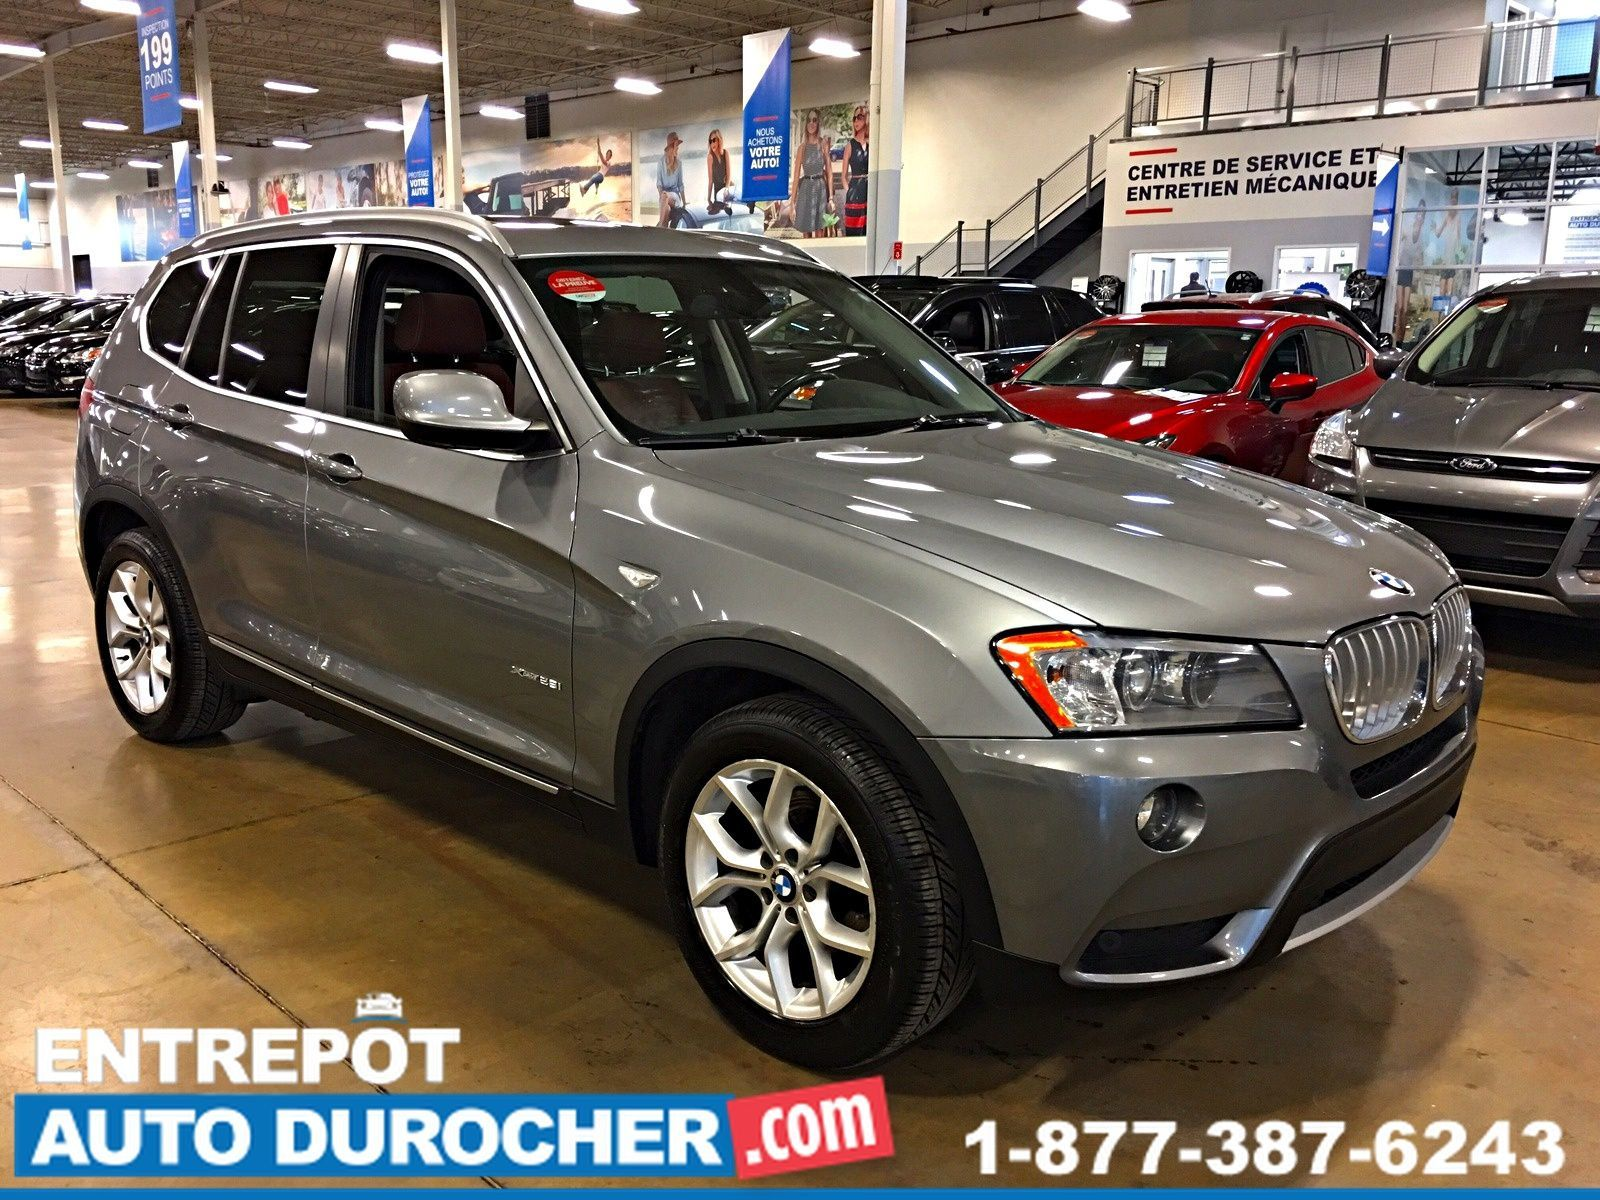 2013 BMW X3 28i 4X4 TOIT PANORAMIQUE JANTES 2013 BMW X3 PANORAMIC ROOF LEATHER